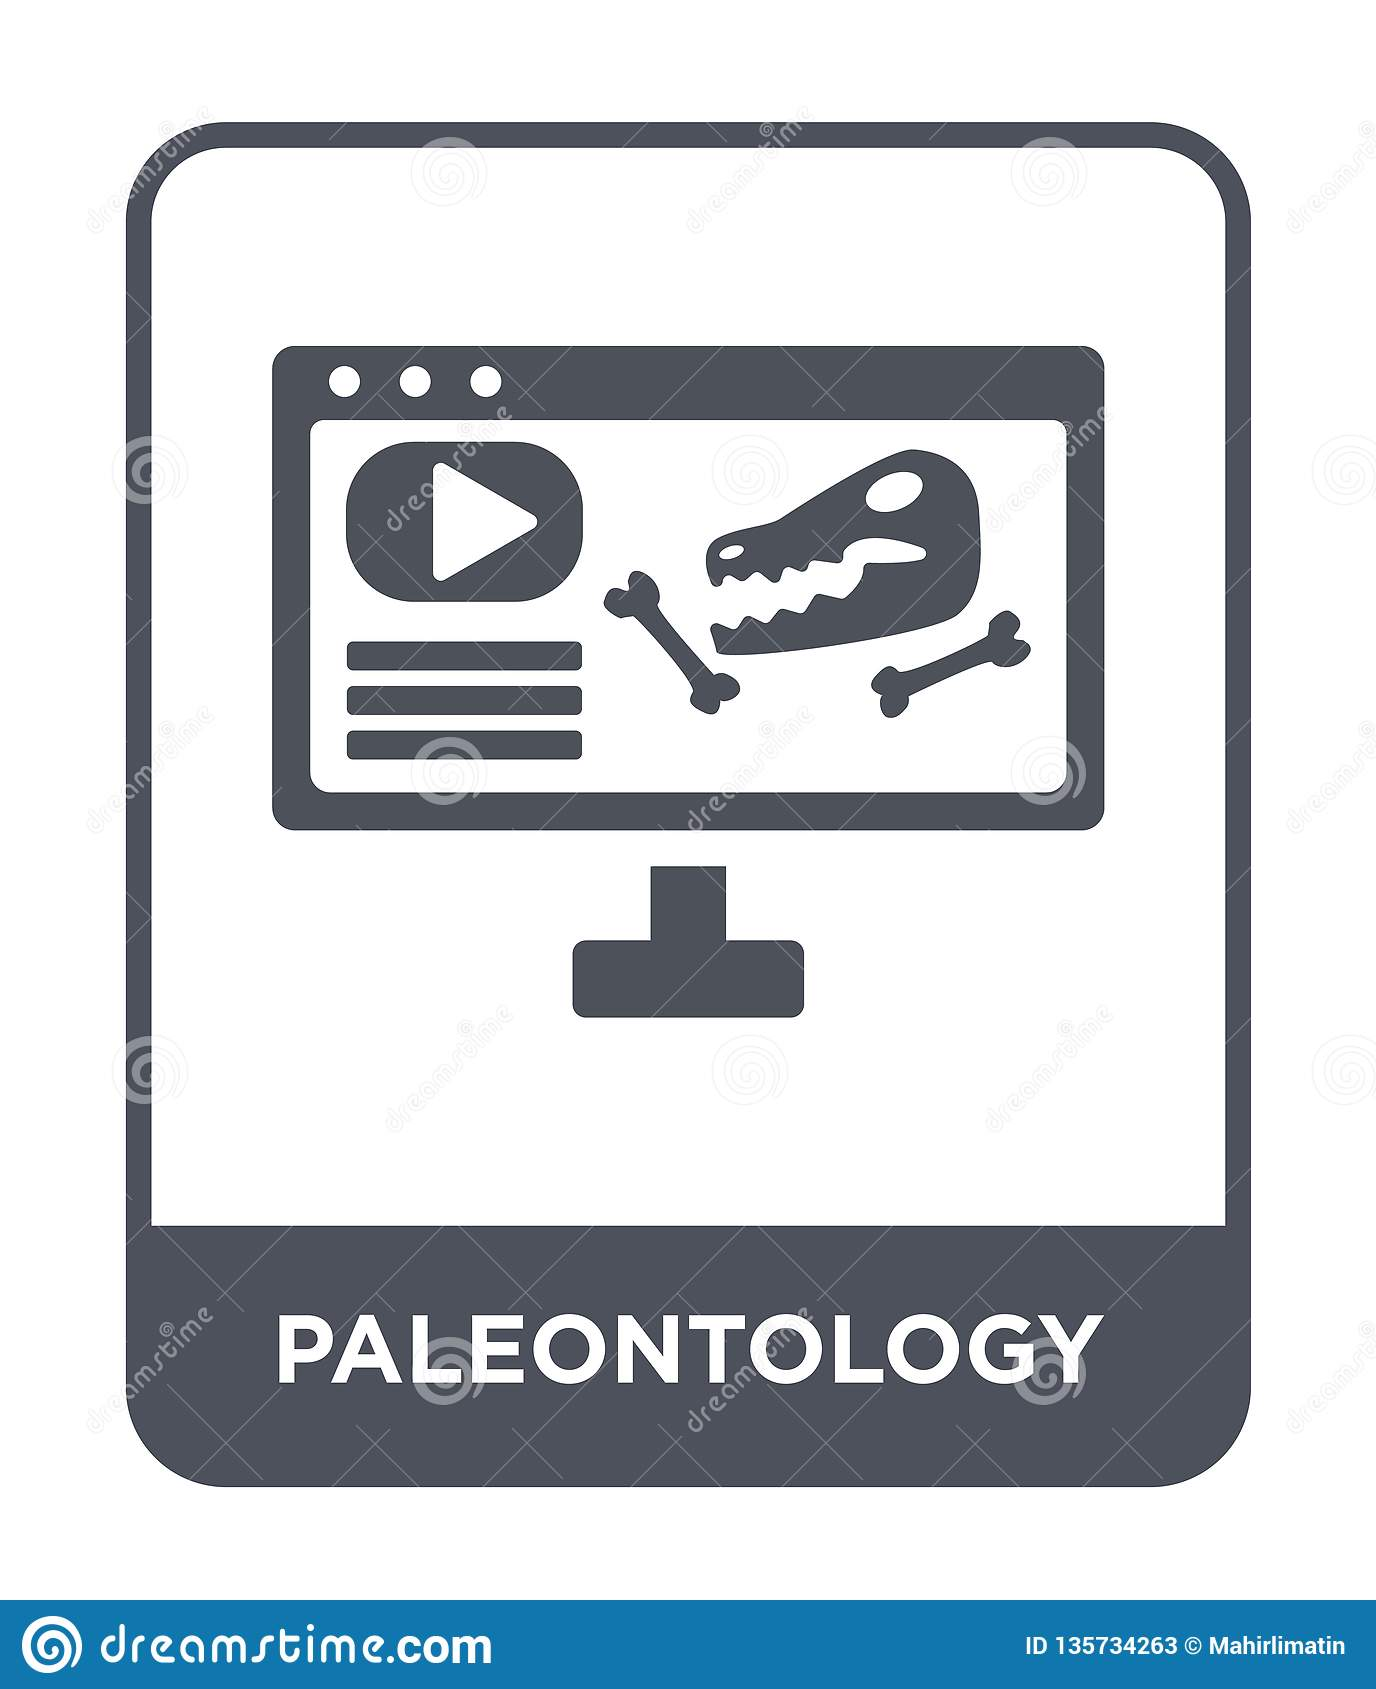 paleontology icon in trendy design style. paleontology icon isolated on white background. paleontology vector icon simple and